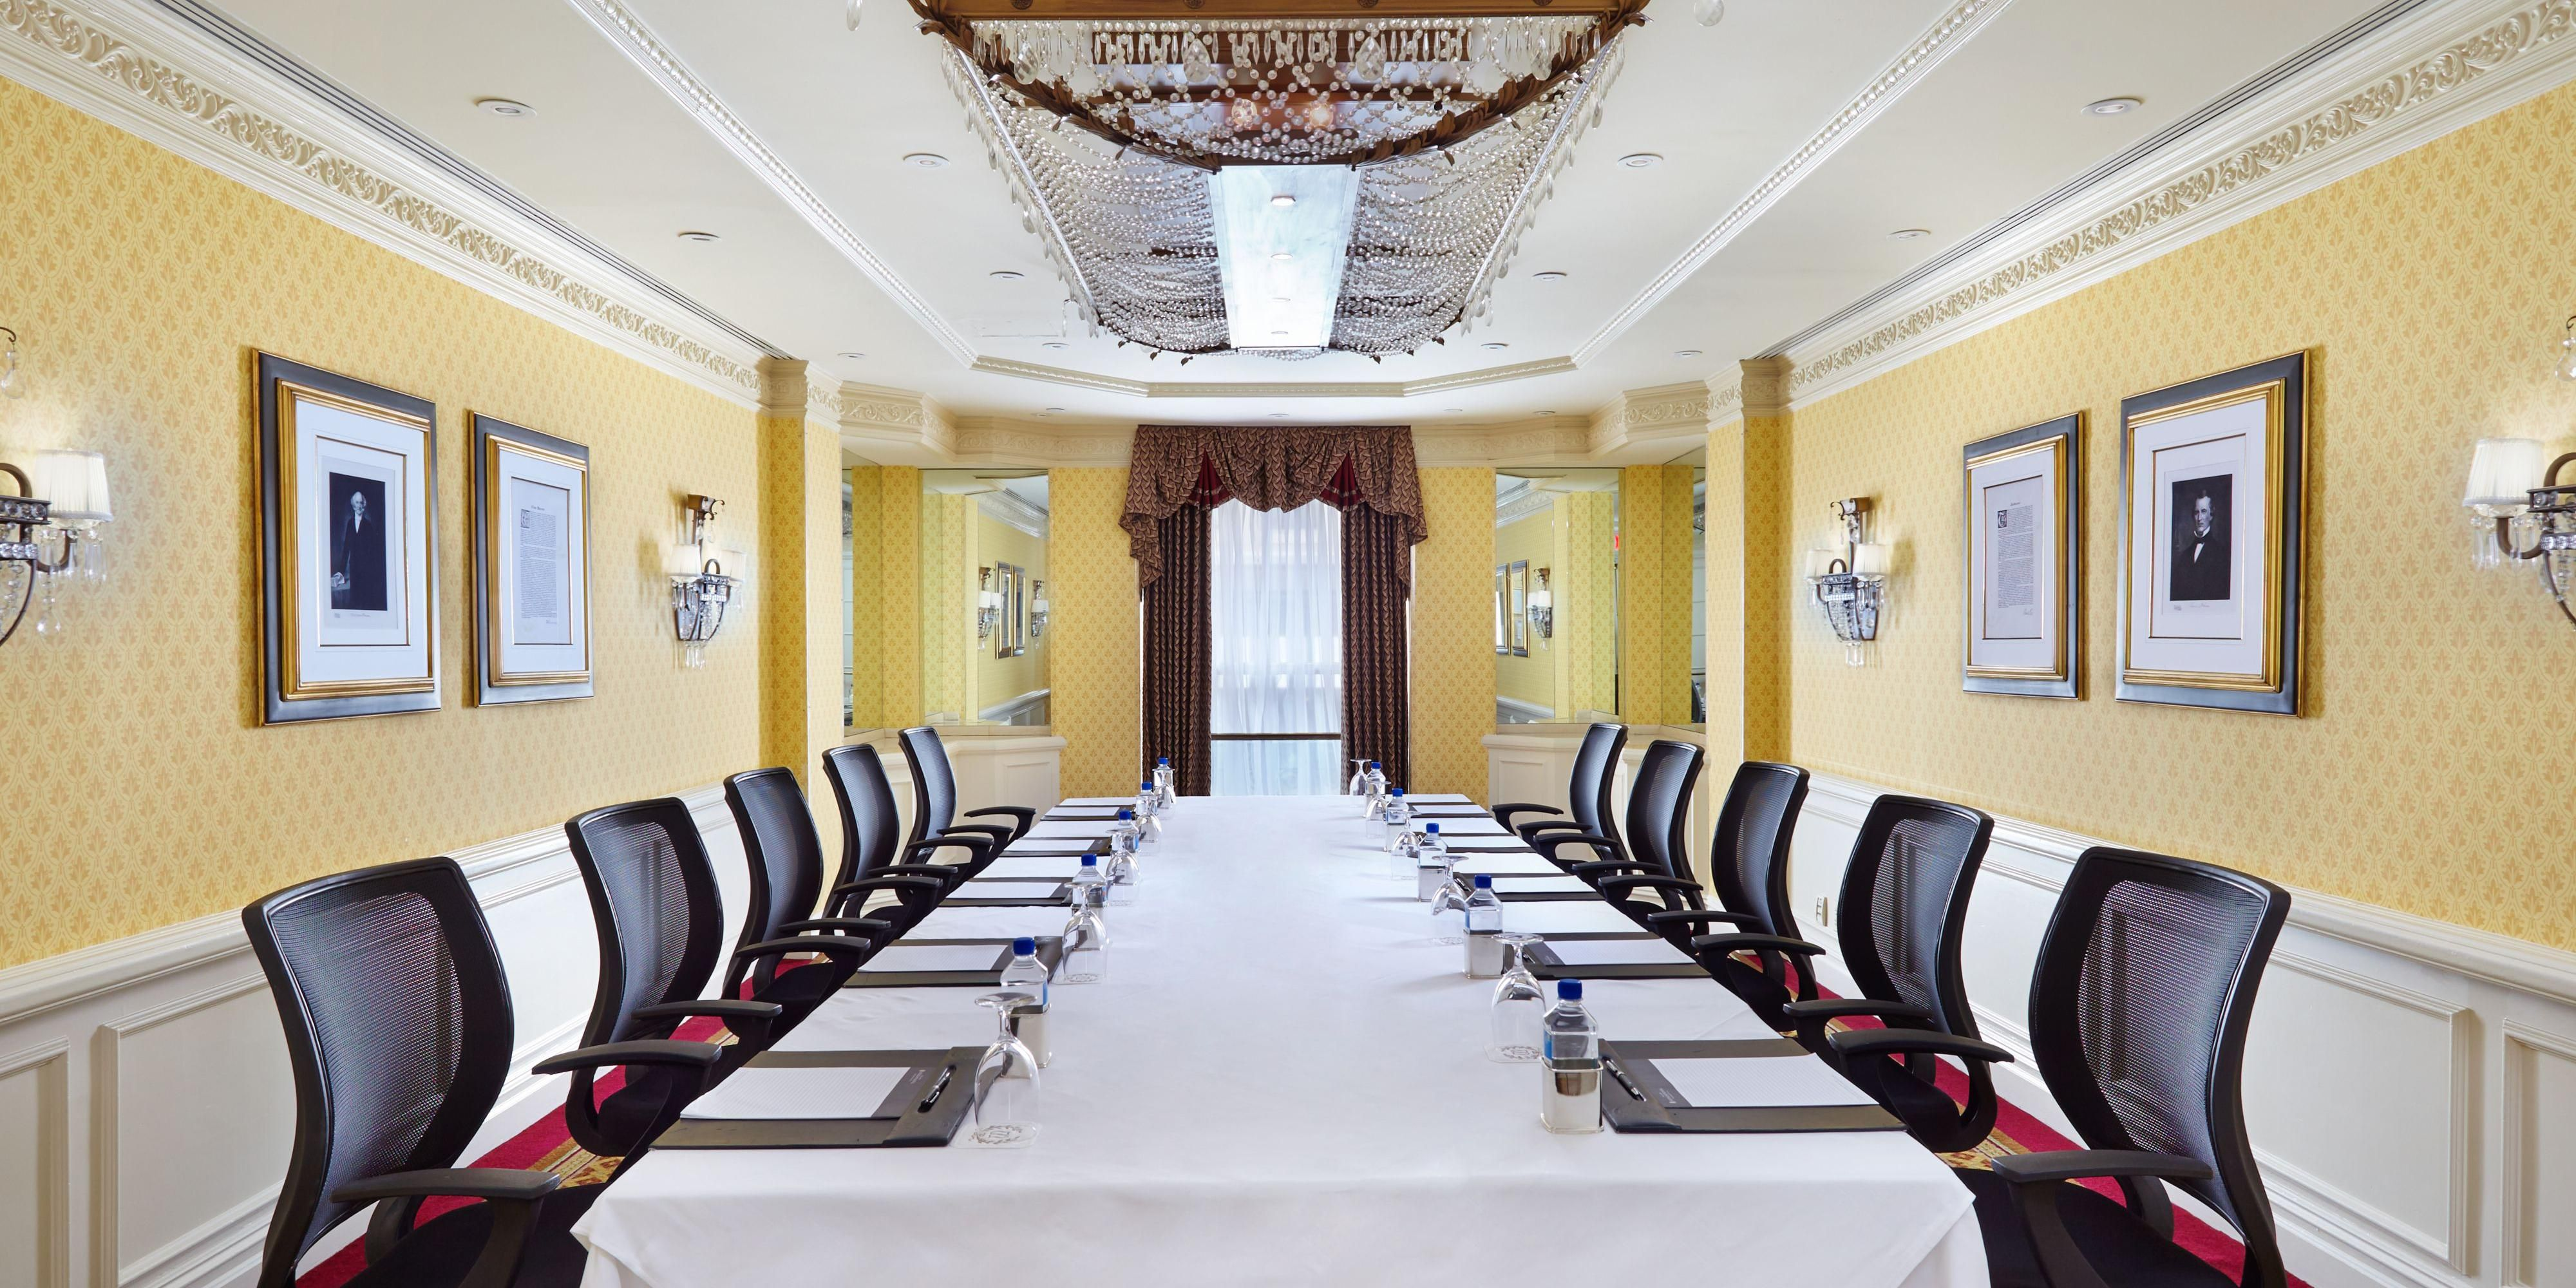 Background Ruang Kelas Intercontinental The Willard Washington D C Hotel Meeting Rooms